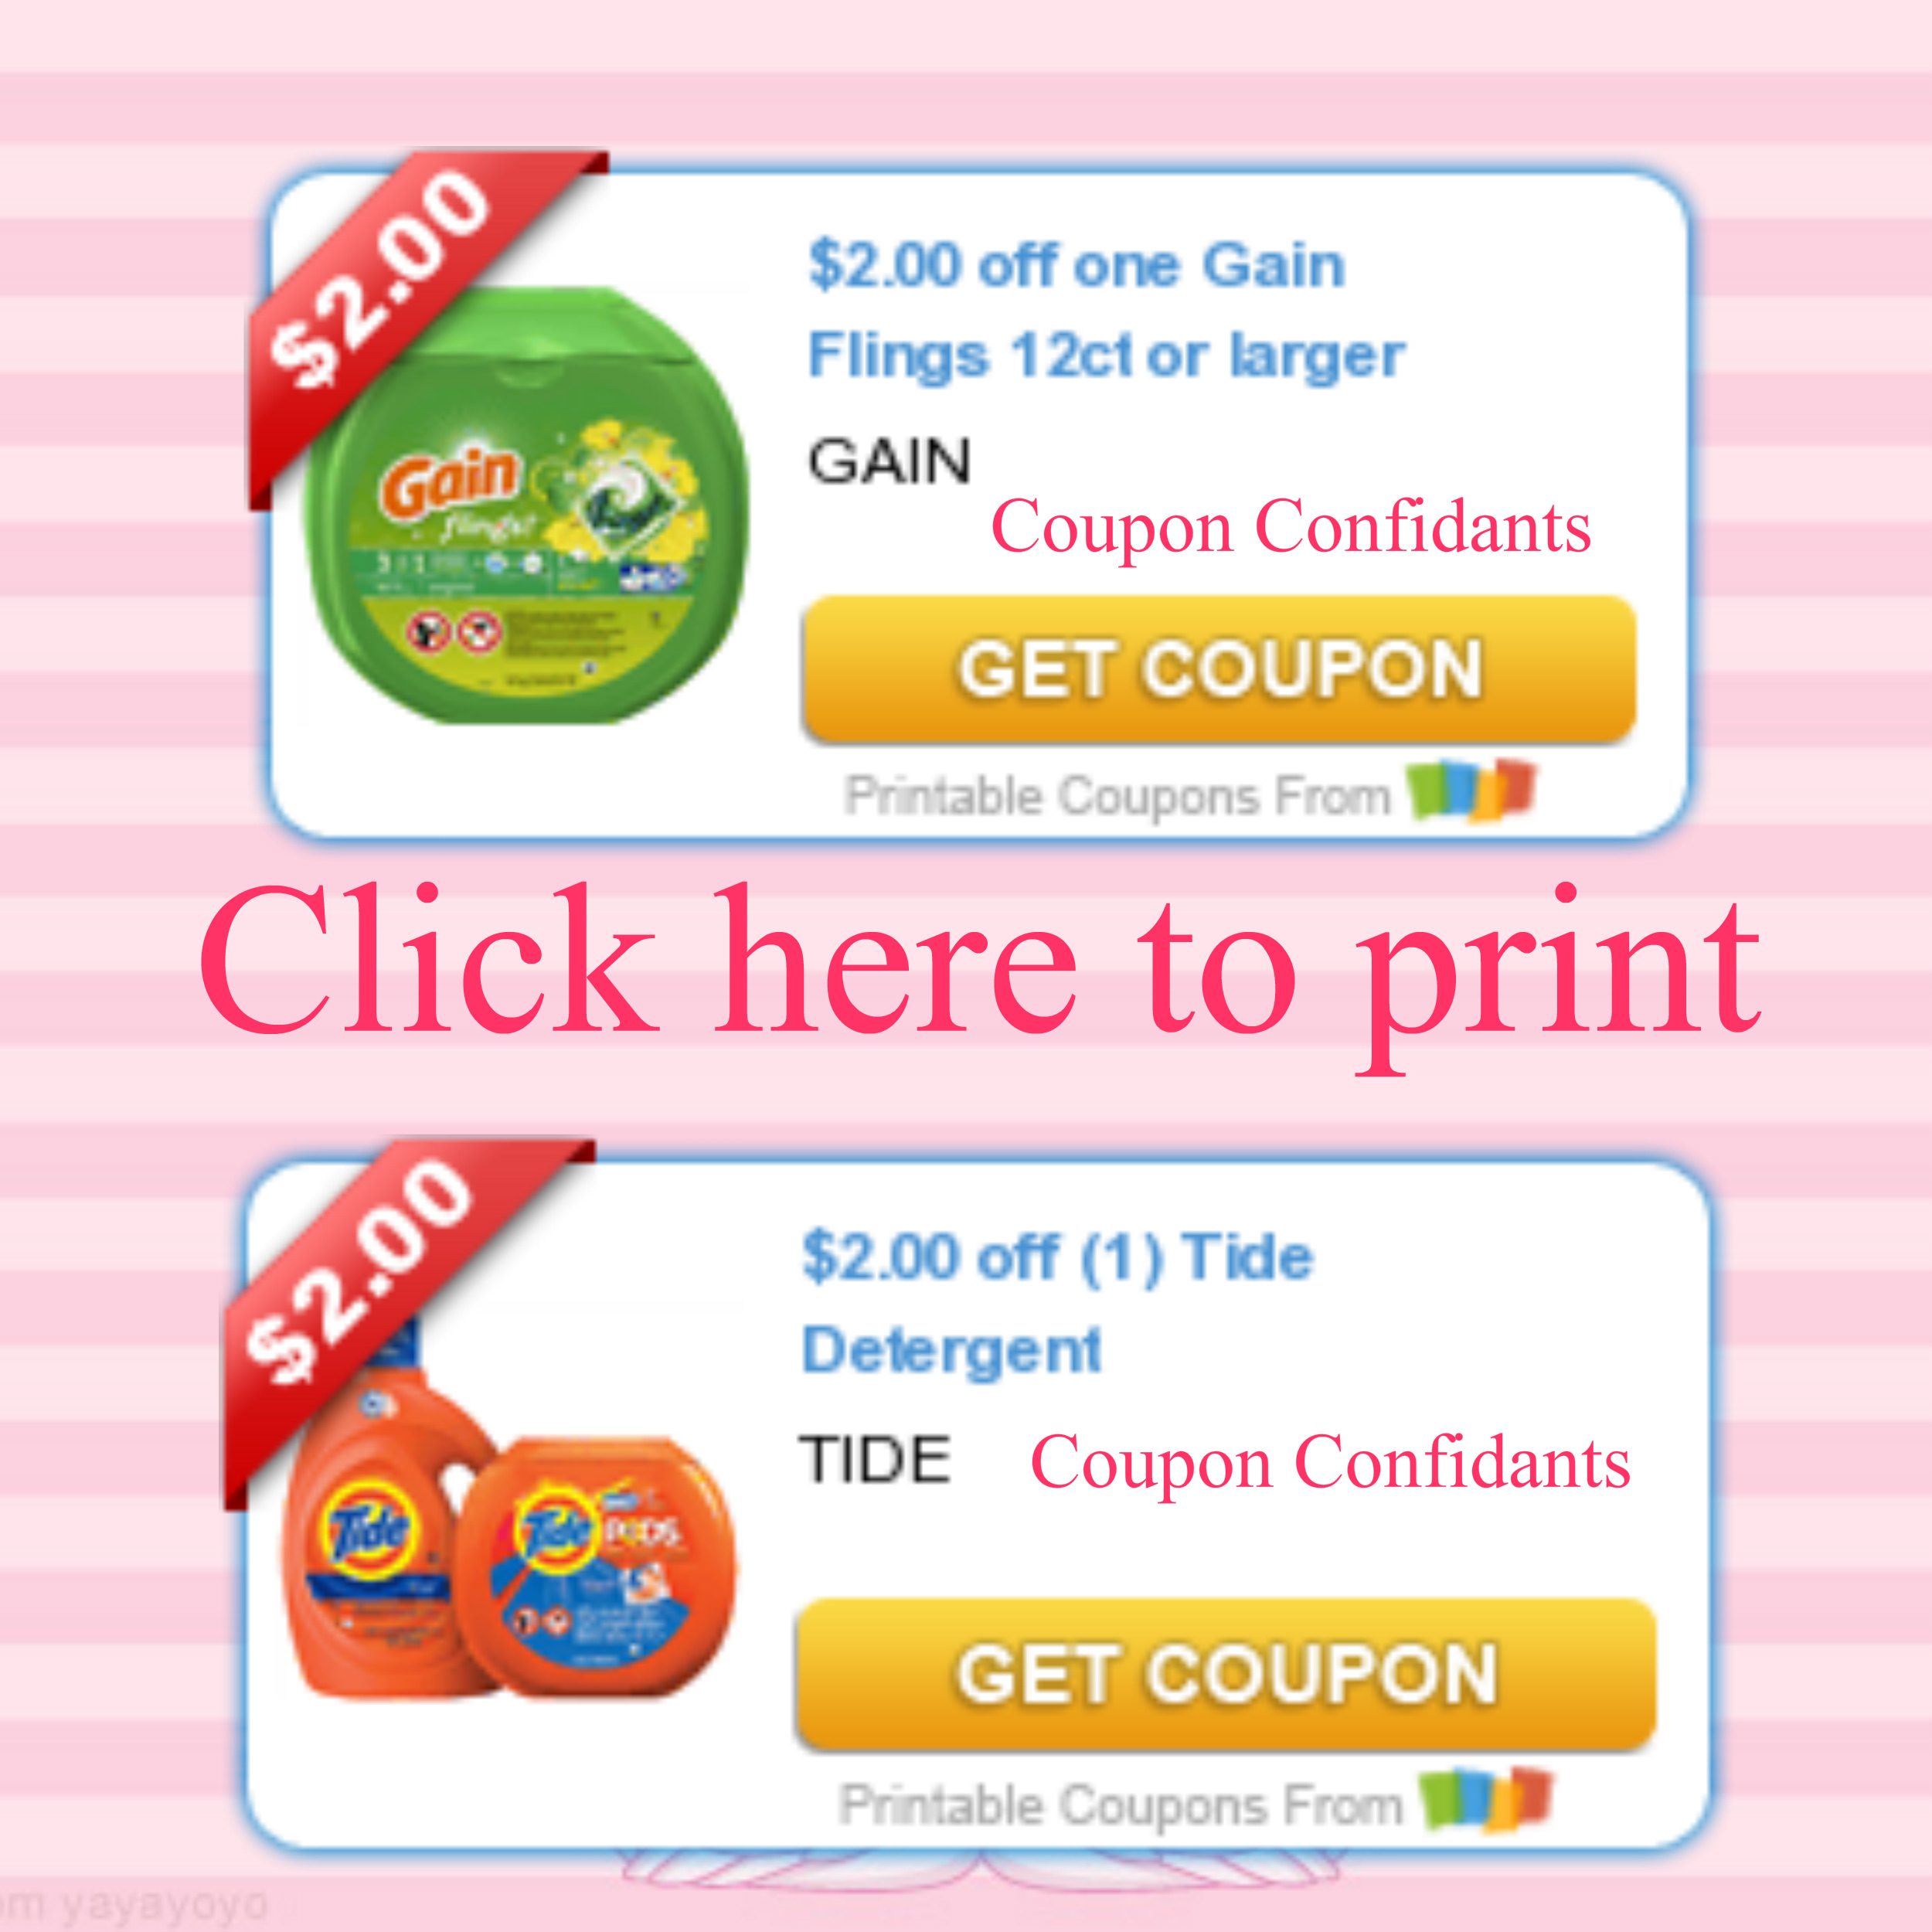 image about Gain Coupons Printable called Sizzling! Contemporary 12ct!!! Financial gain TIDE printable coupon codes ⋆ Coupon